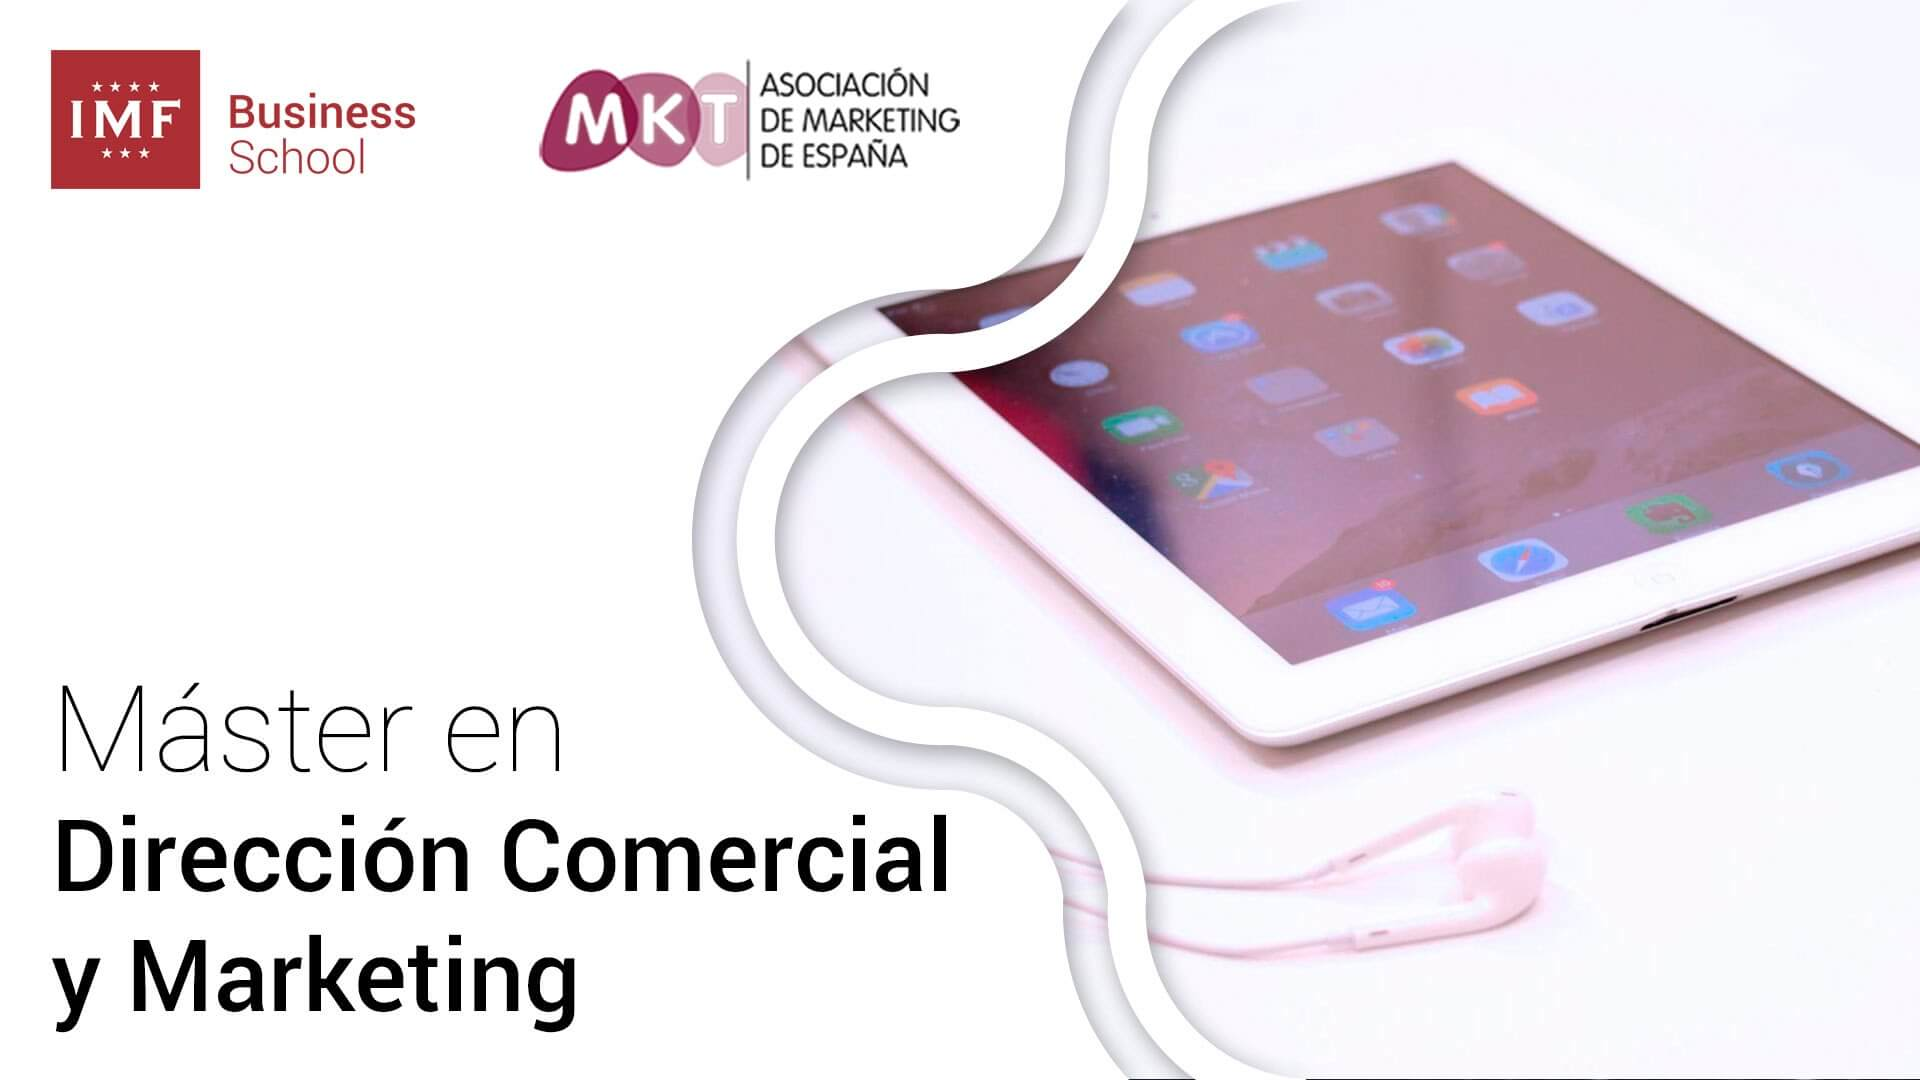 Máster en Dirección Comercial y Marketing